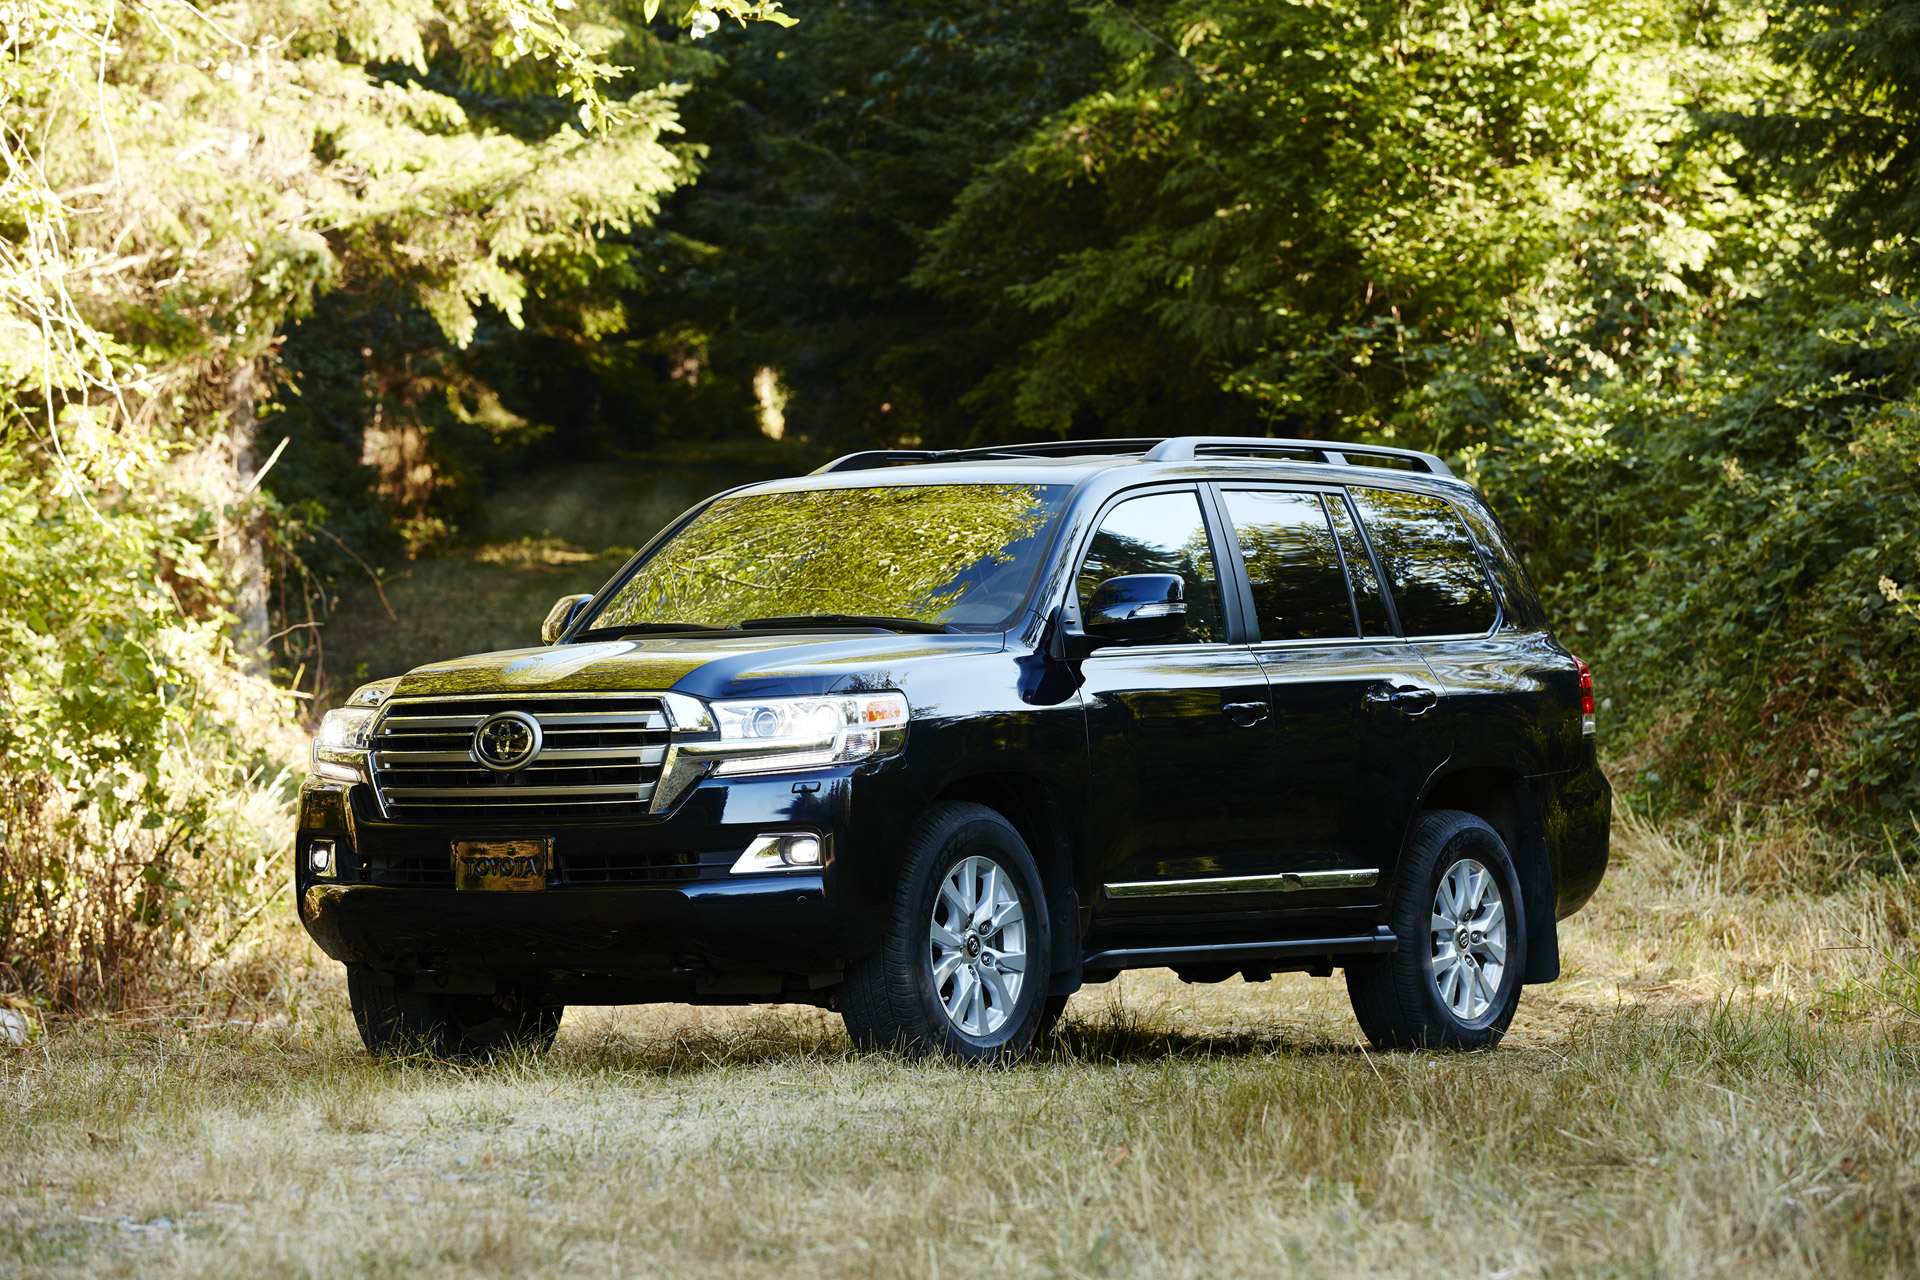 2016 toyota land cruiser gas mileage the car connection. Black Bedroom Furniture Sets. Home Design Ideas